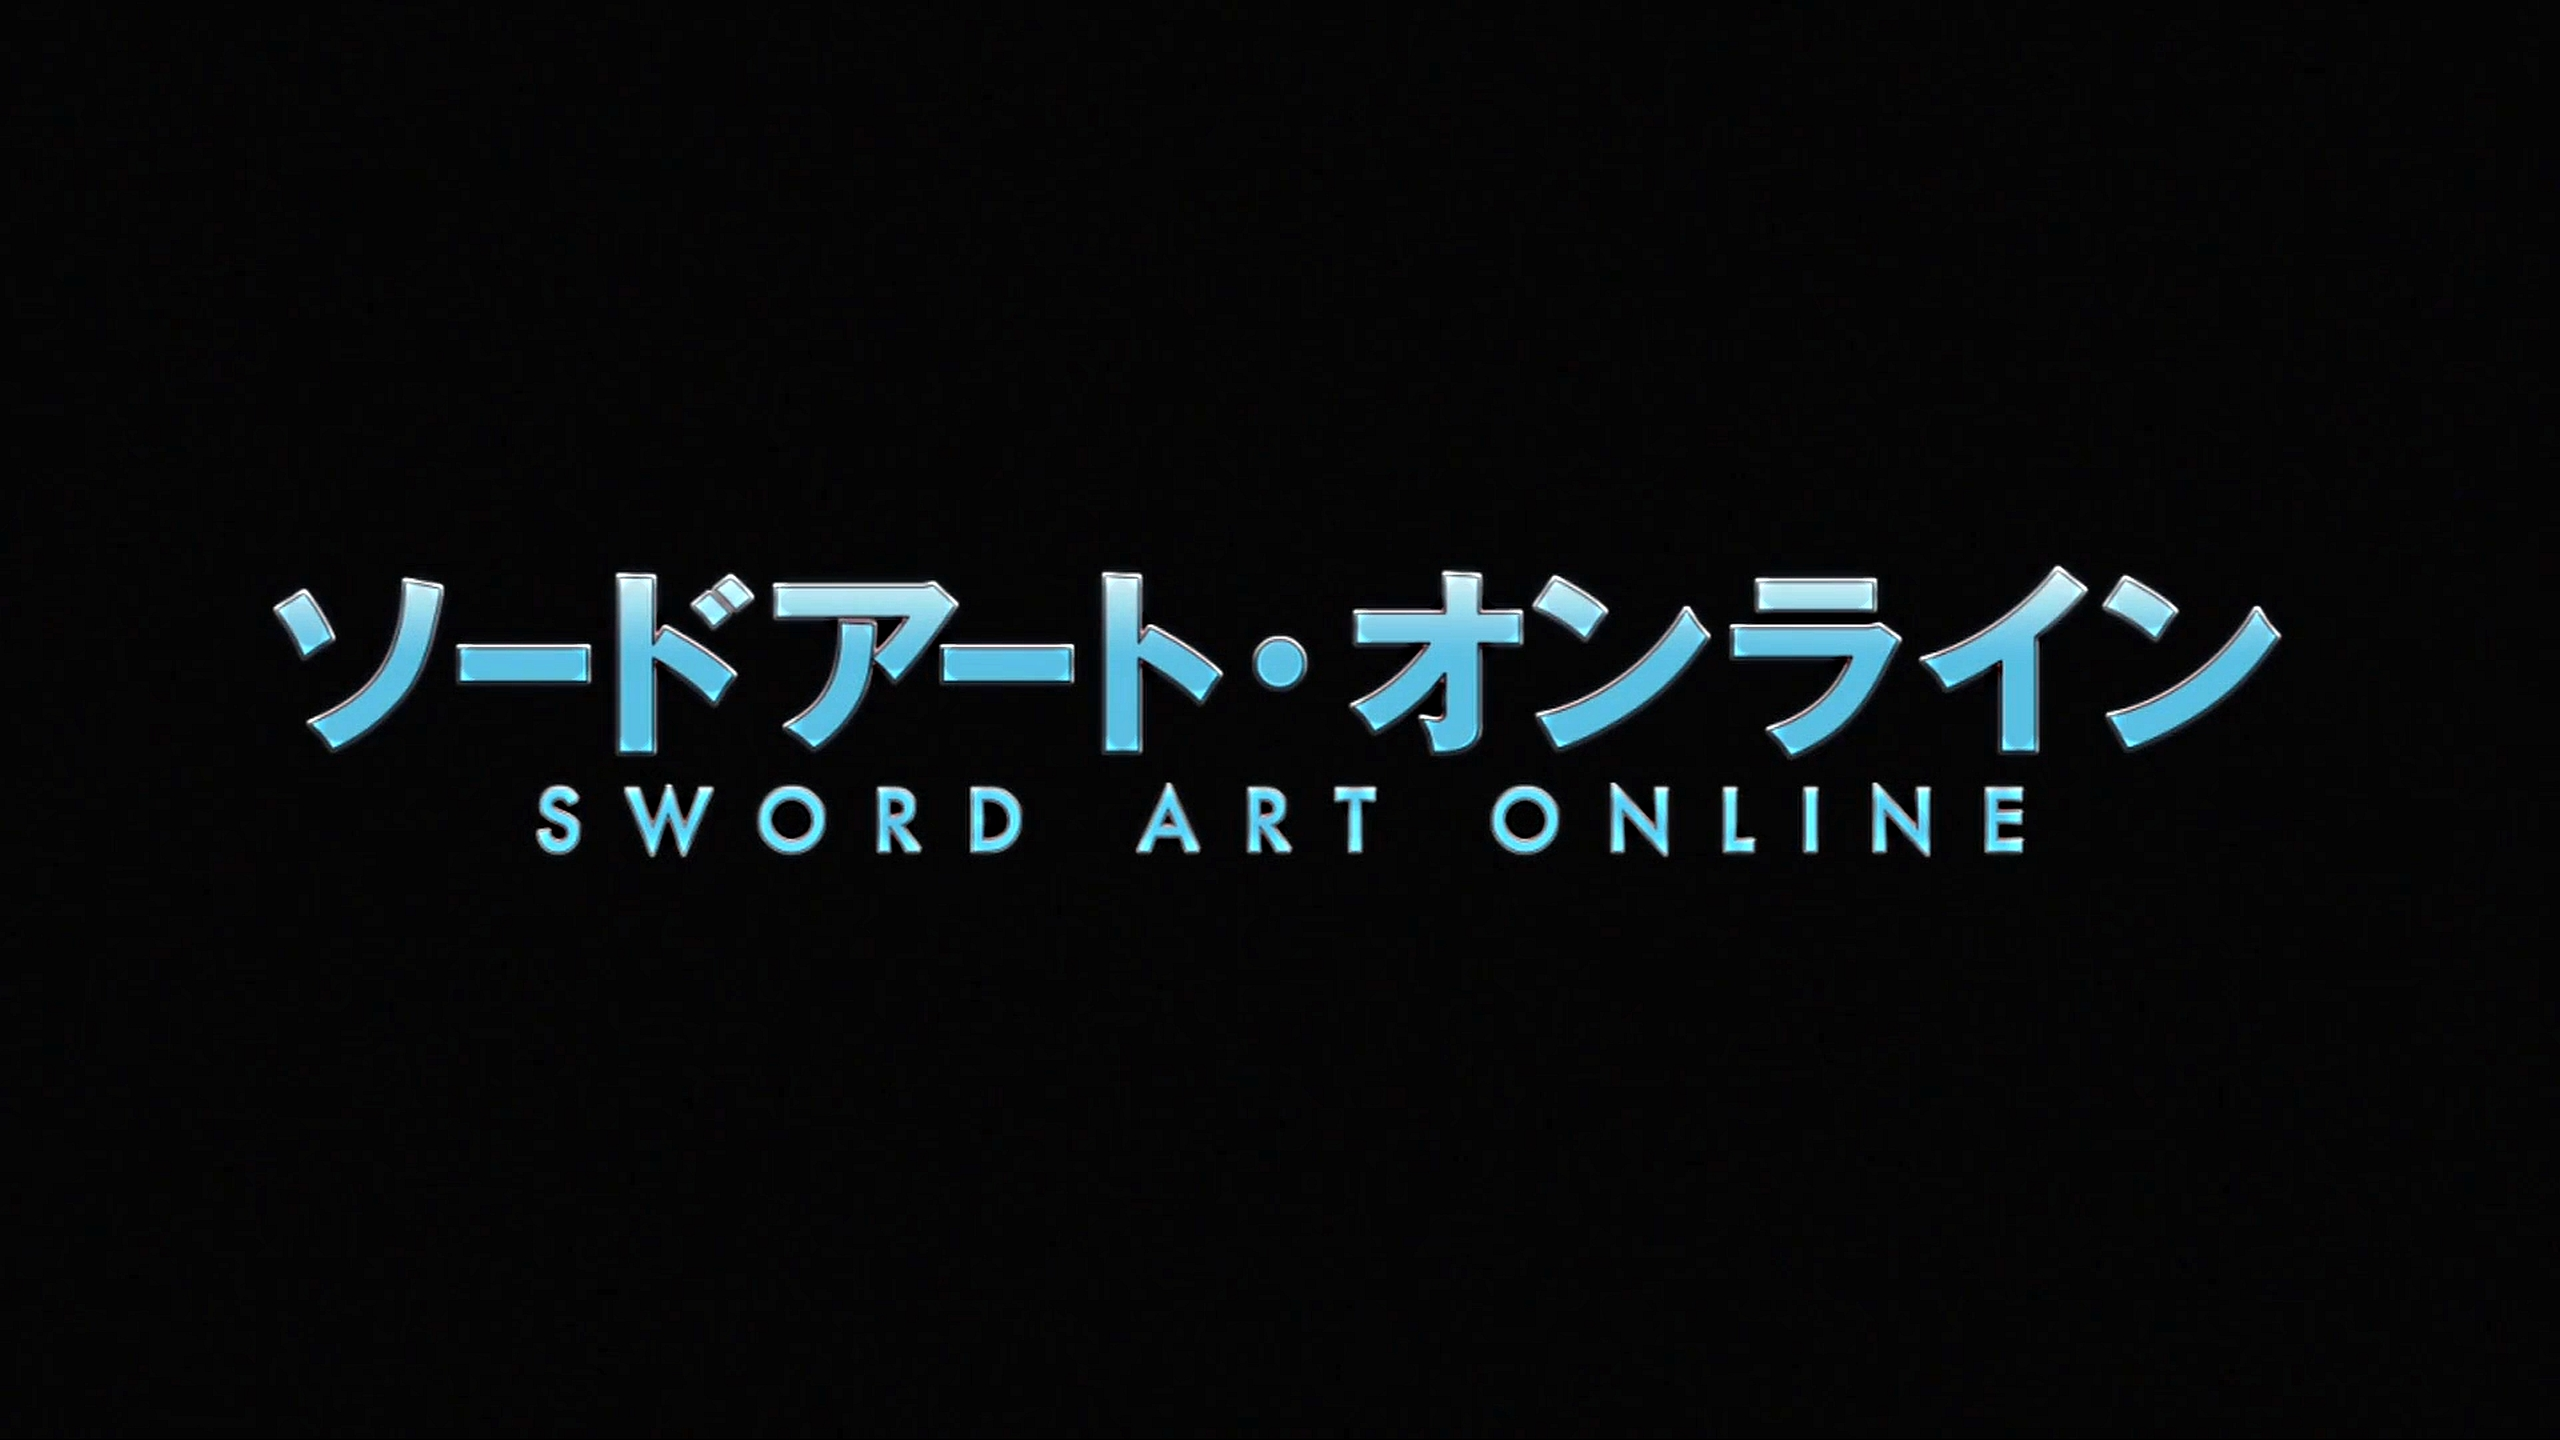 2452 Sword Art Online Hd Wallpapers Background Images